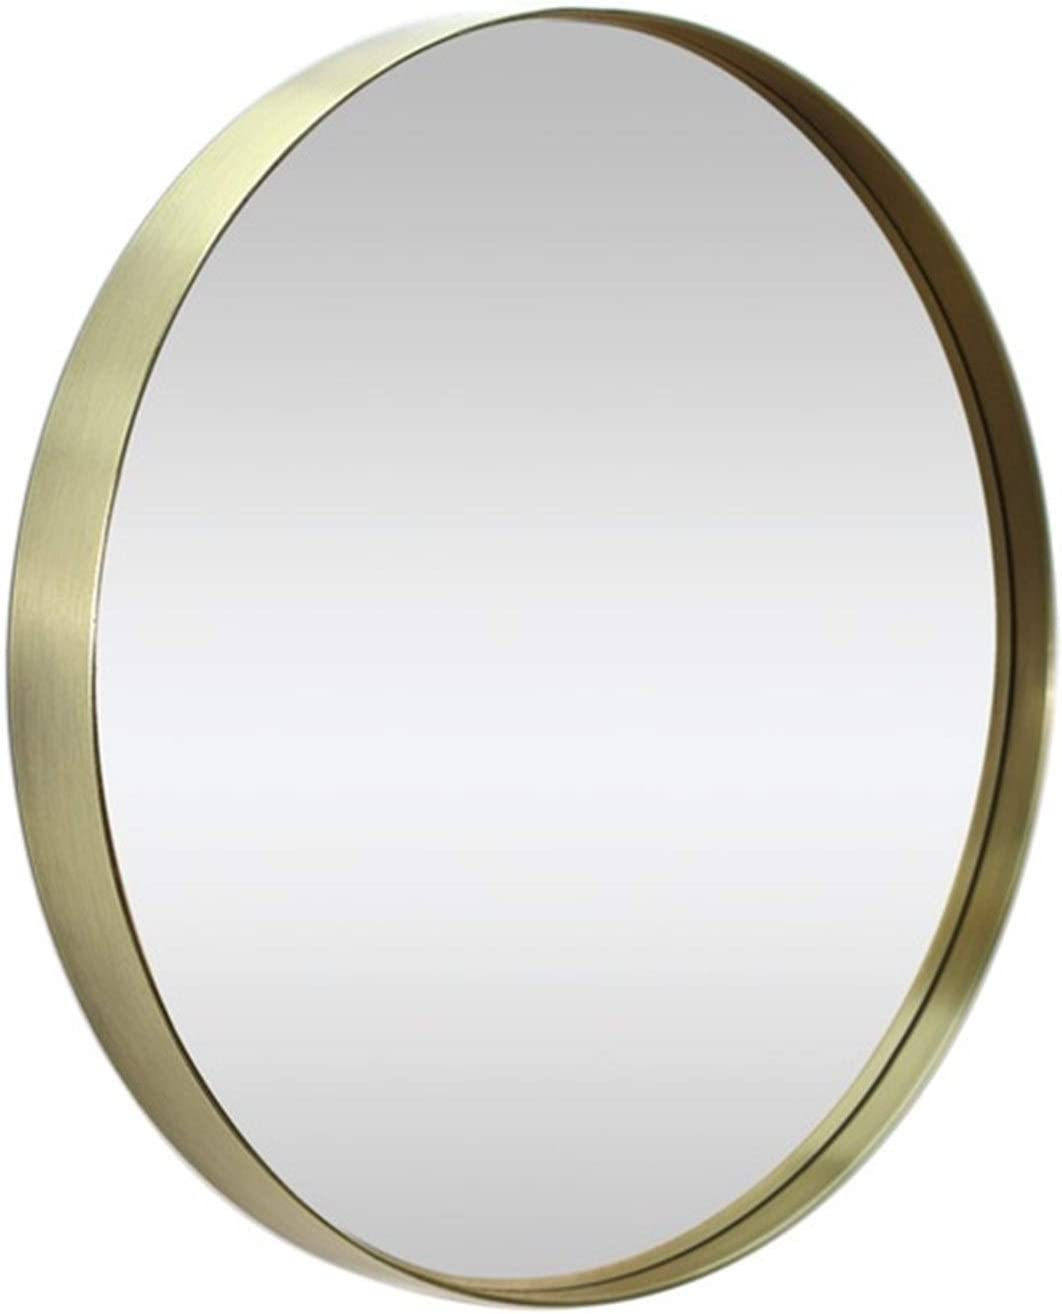 WLDSW New item Glass Panel Gold Framed Rounded Design Deep 12 Circle All stores are sold Set